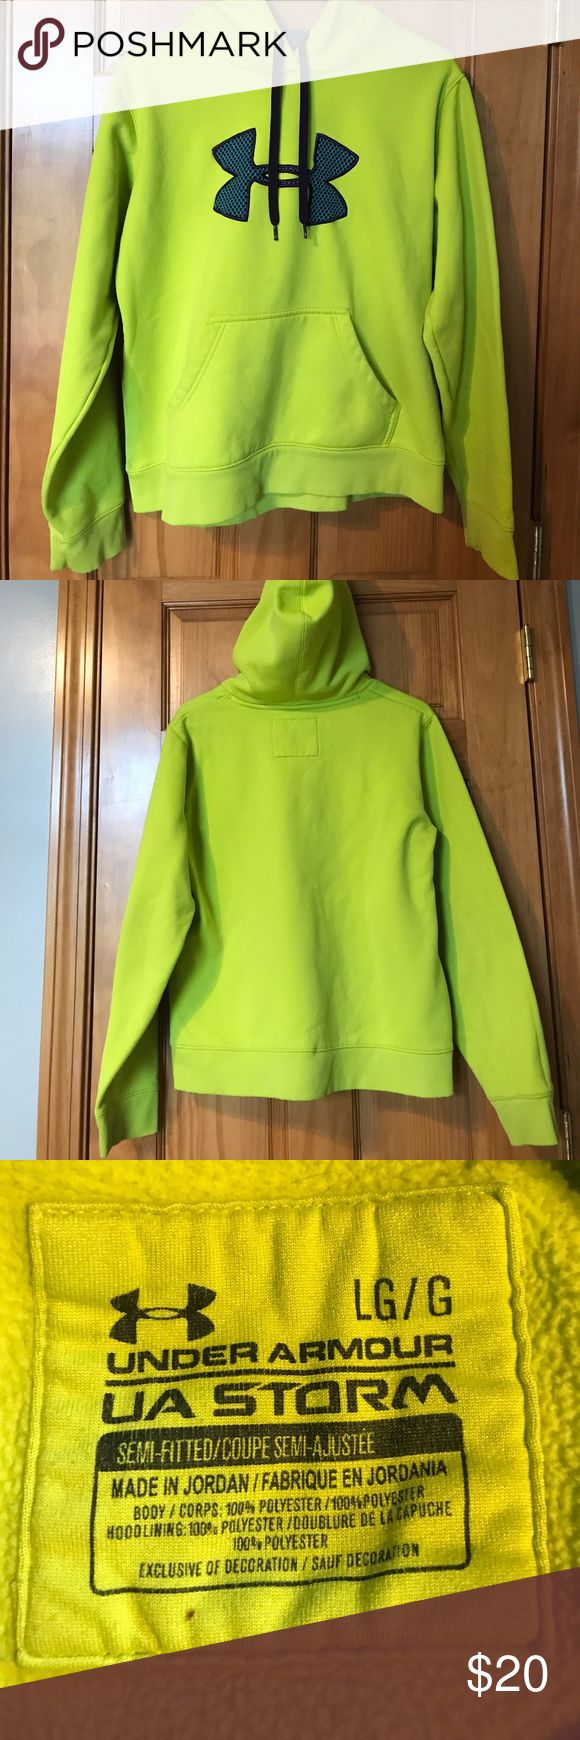 Under Armor Sweatshirt Neon yellow with blue and purple Under Armor symbol.  Water resistant and very warm. There is a  very small stain on the front near the pocket which is pictured. Under Armour Tops Sweatshirts & Hoodies